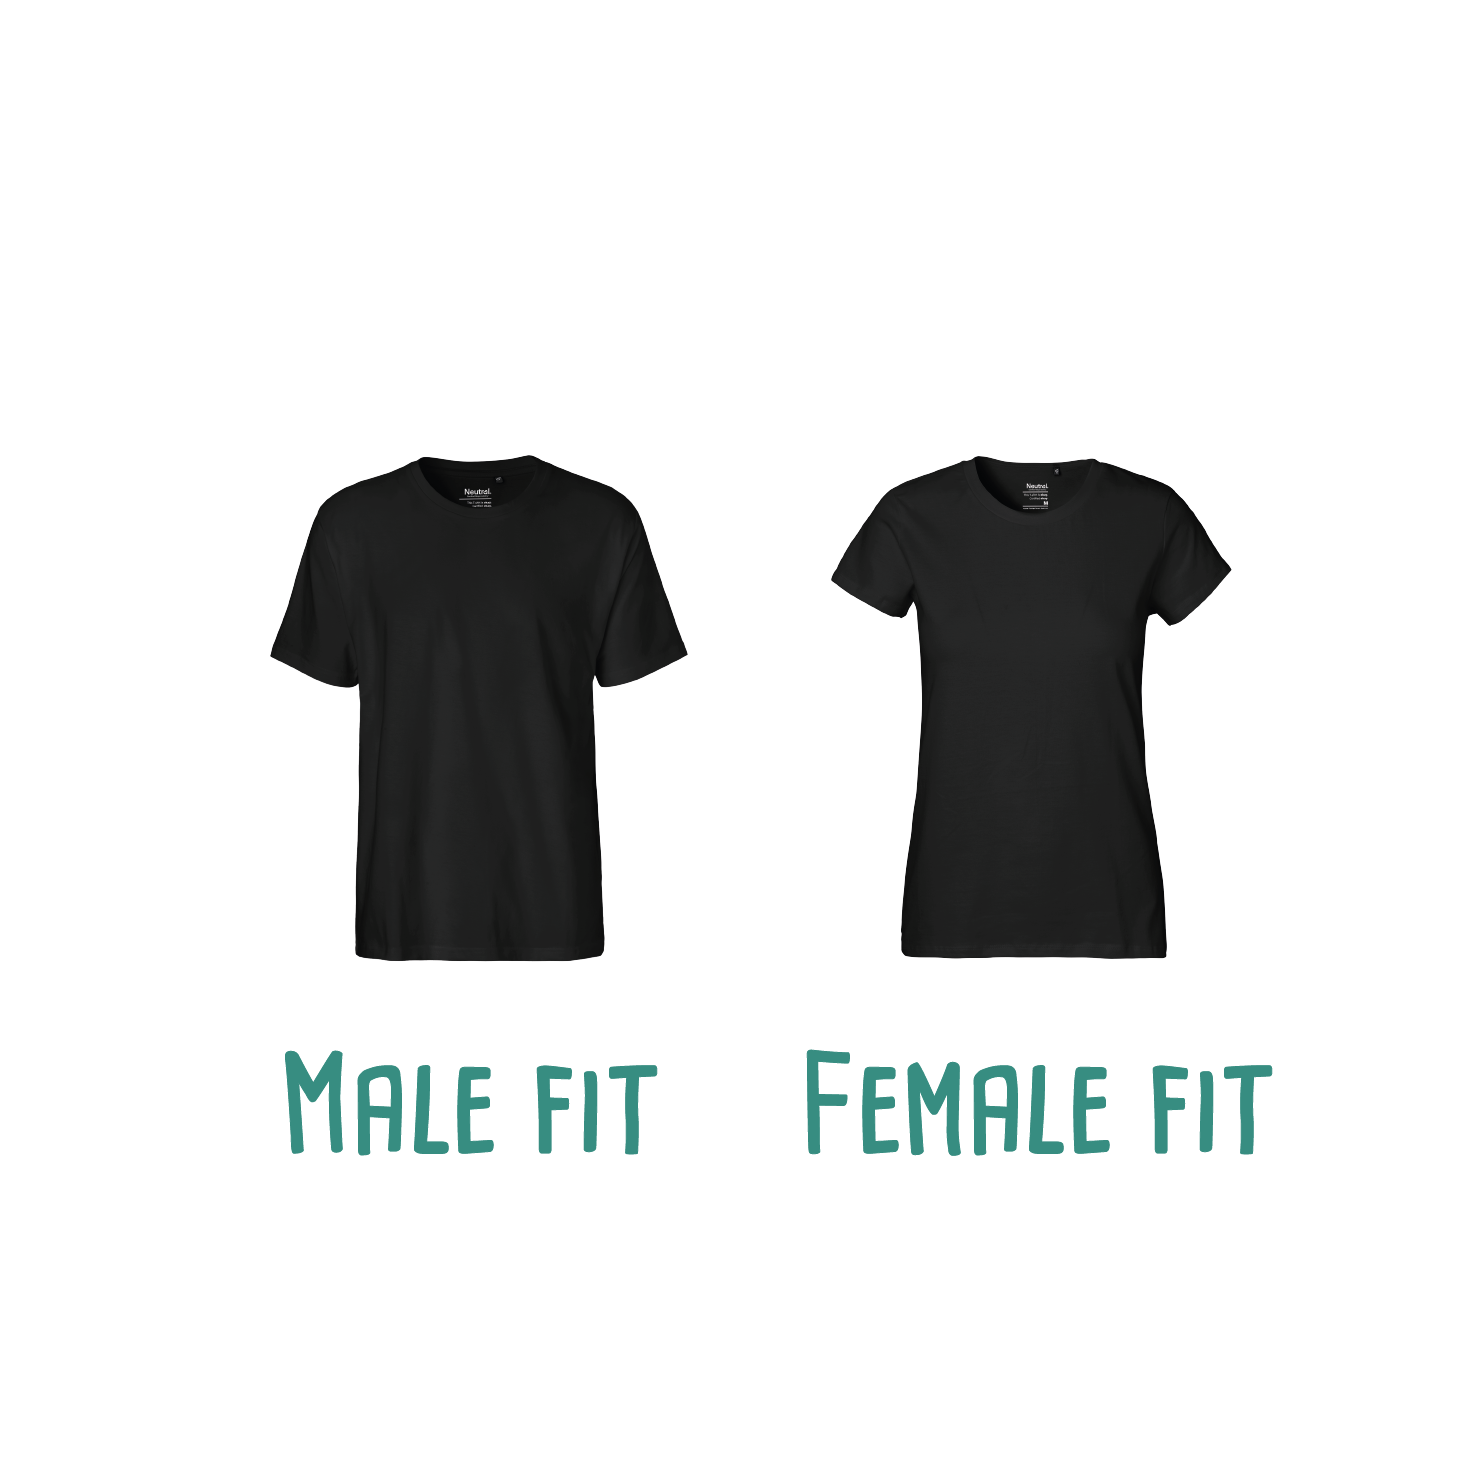 Difference between male or female fit of adult shirts with short sleeves by KMLeon.